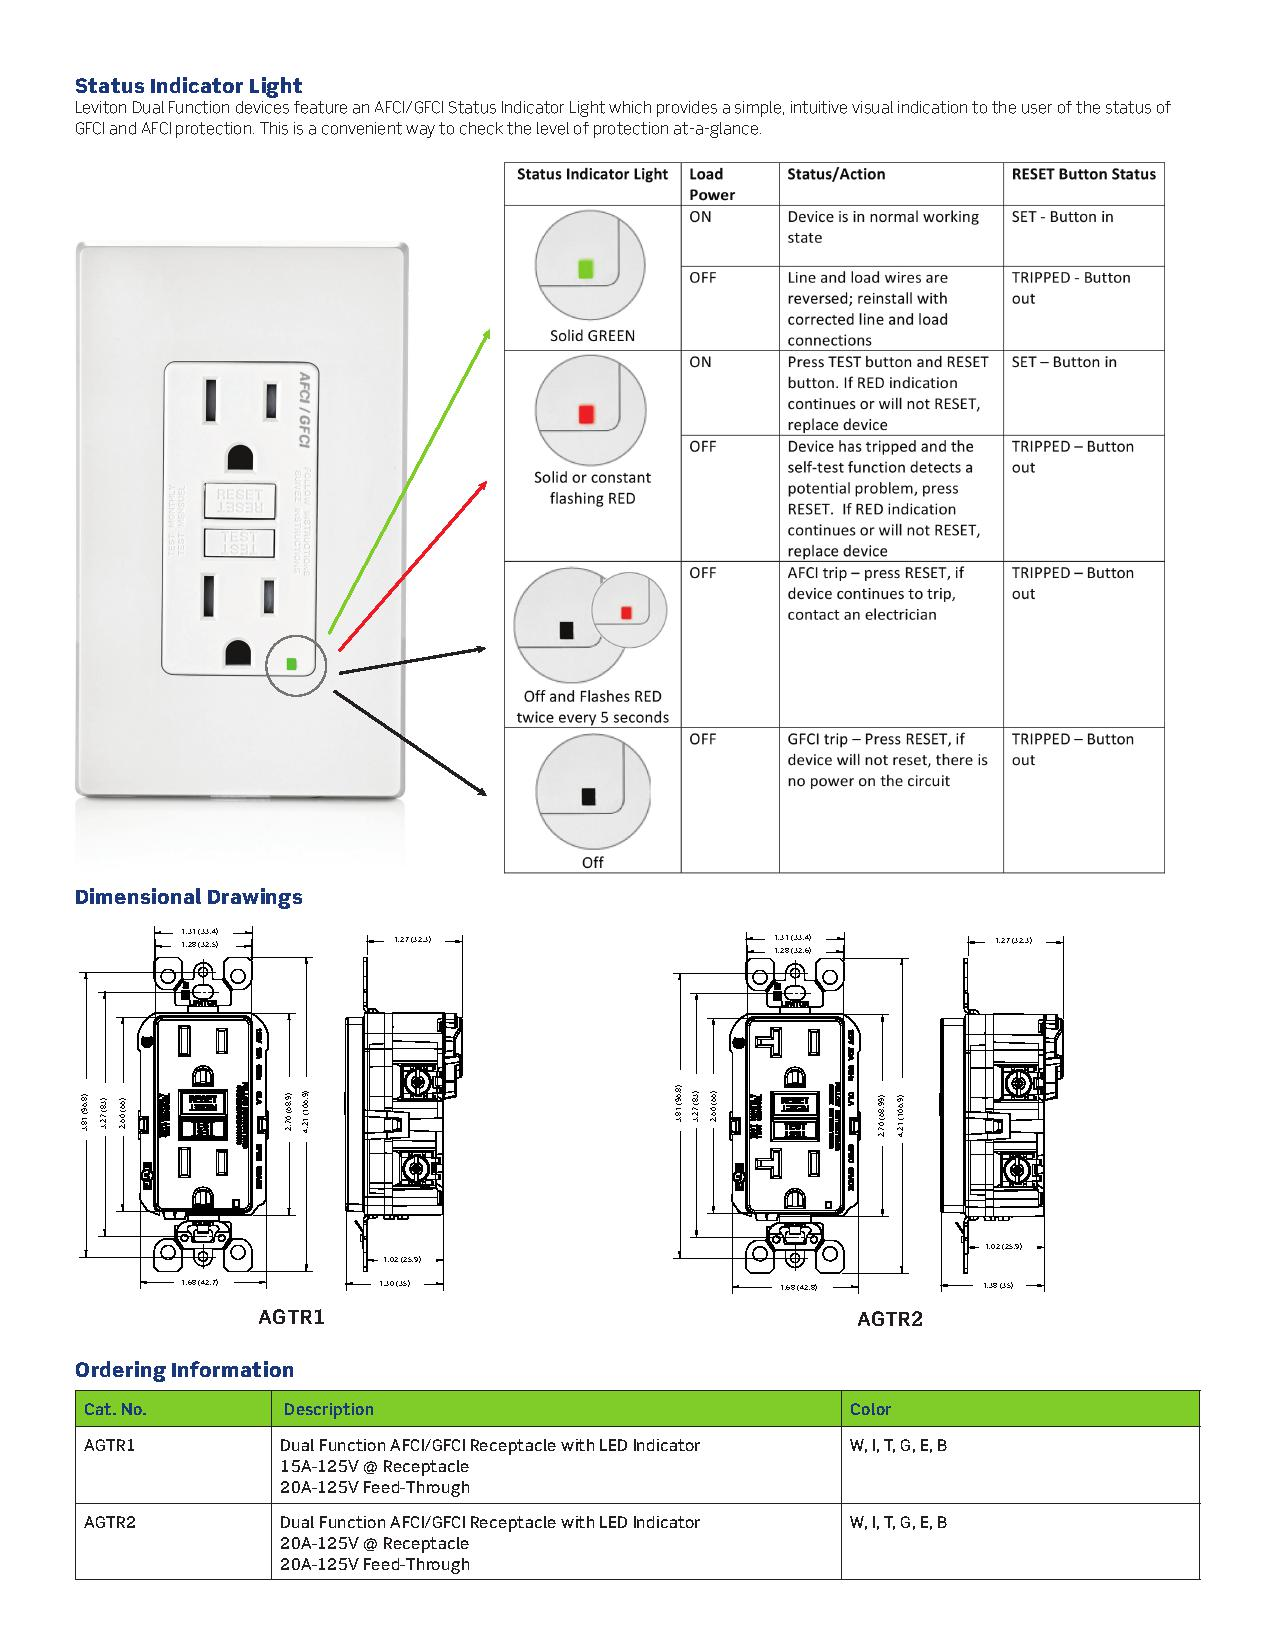 Wire Switch And Outlet besides Wiring Diagram For Caterpillar 277b in addition Leviton Switch Wiring Diagram together with F 15 Schematic The Wiring Diagram in addition Leviton Light Switch Wiring Diagram. on how to wire cooper 277 pilot light switch